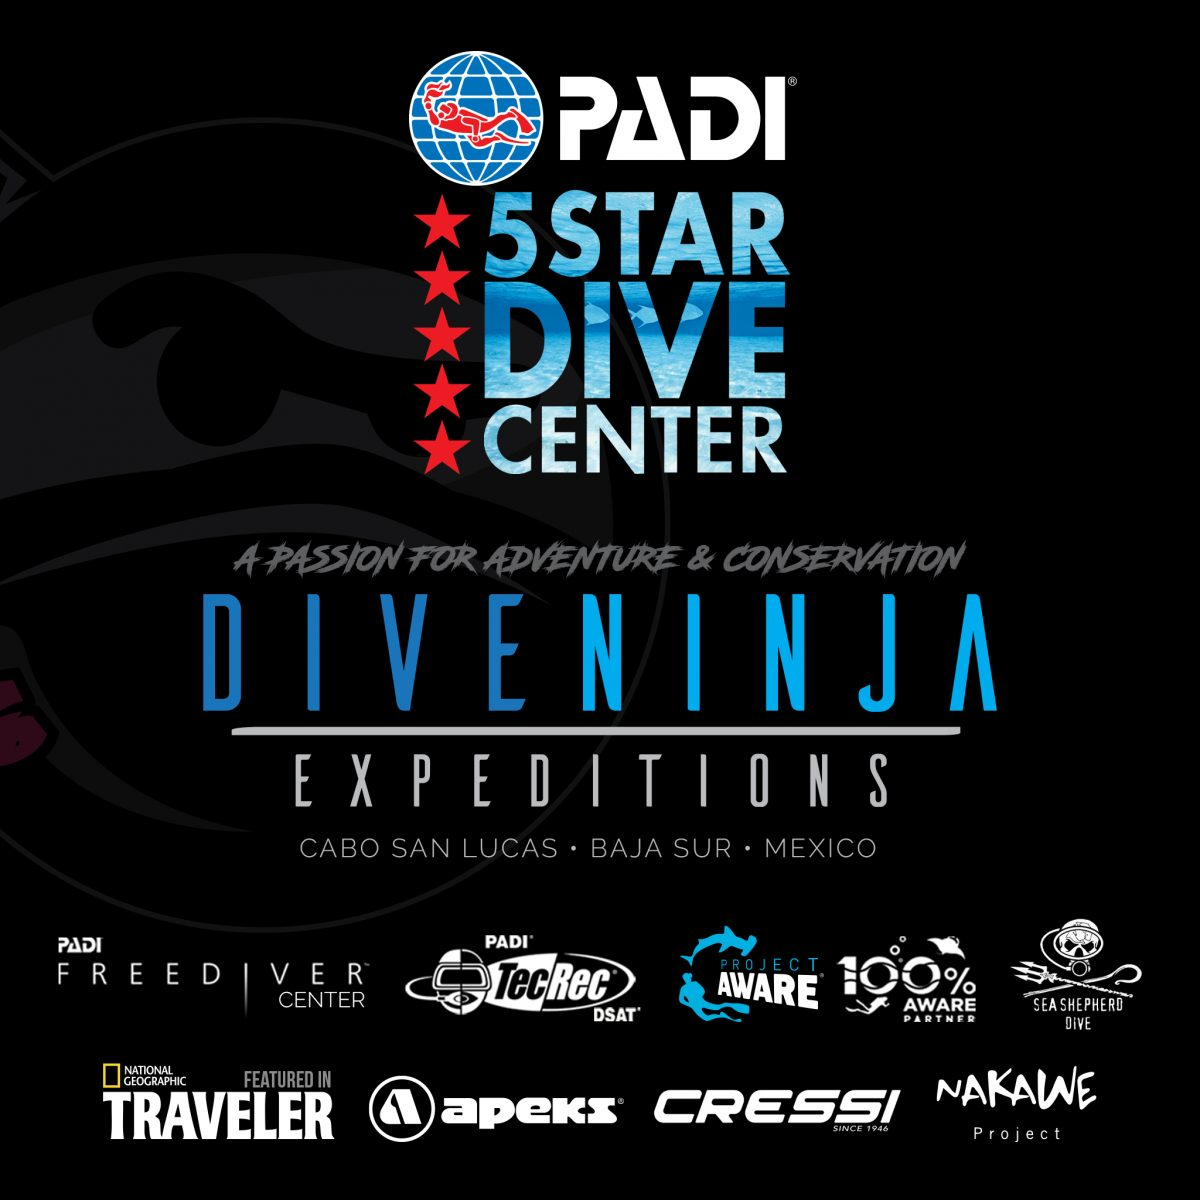 Dive Ninja Expeditions - PADI 5 Star Dive Center in Los Cabos, Mexico